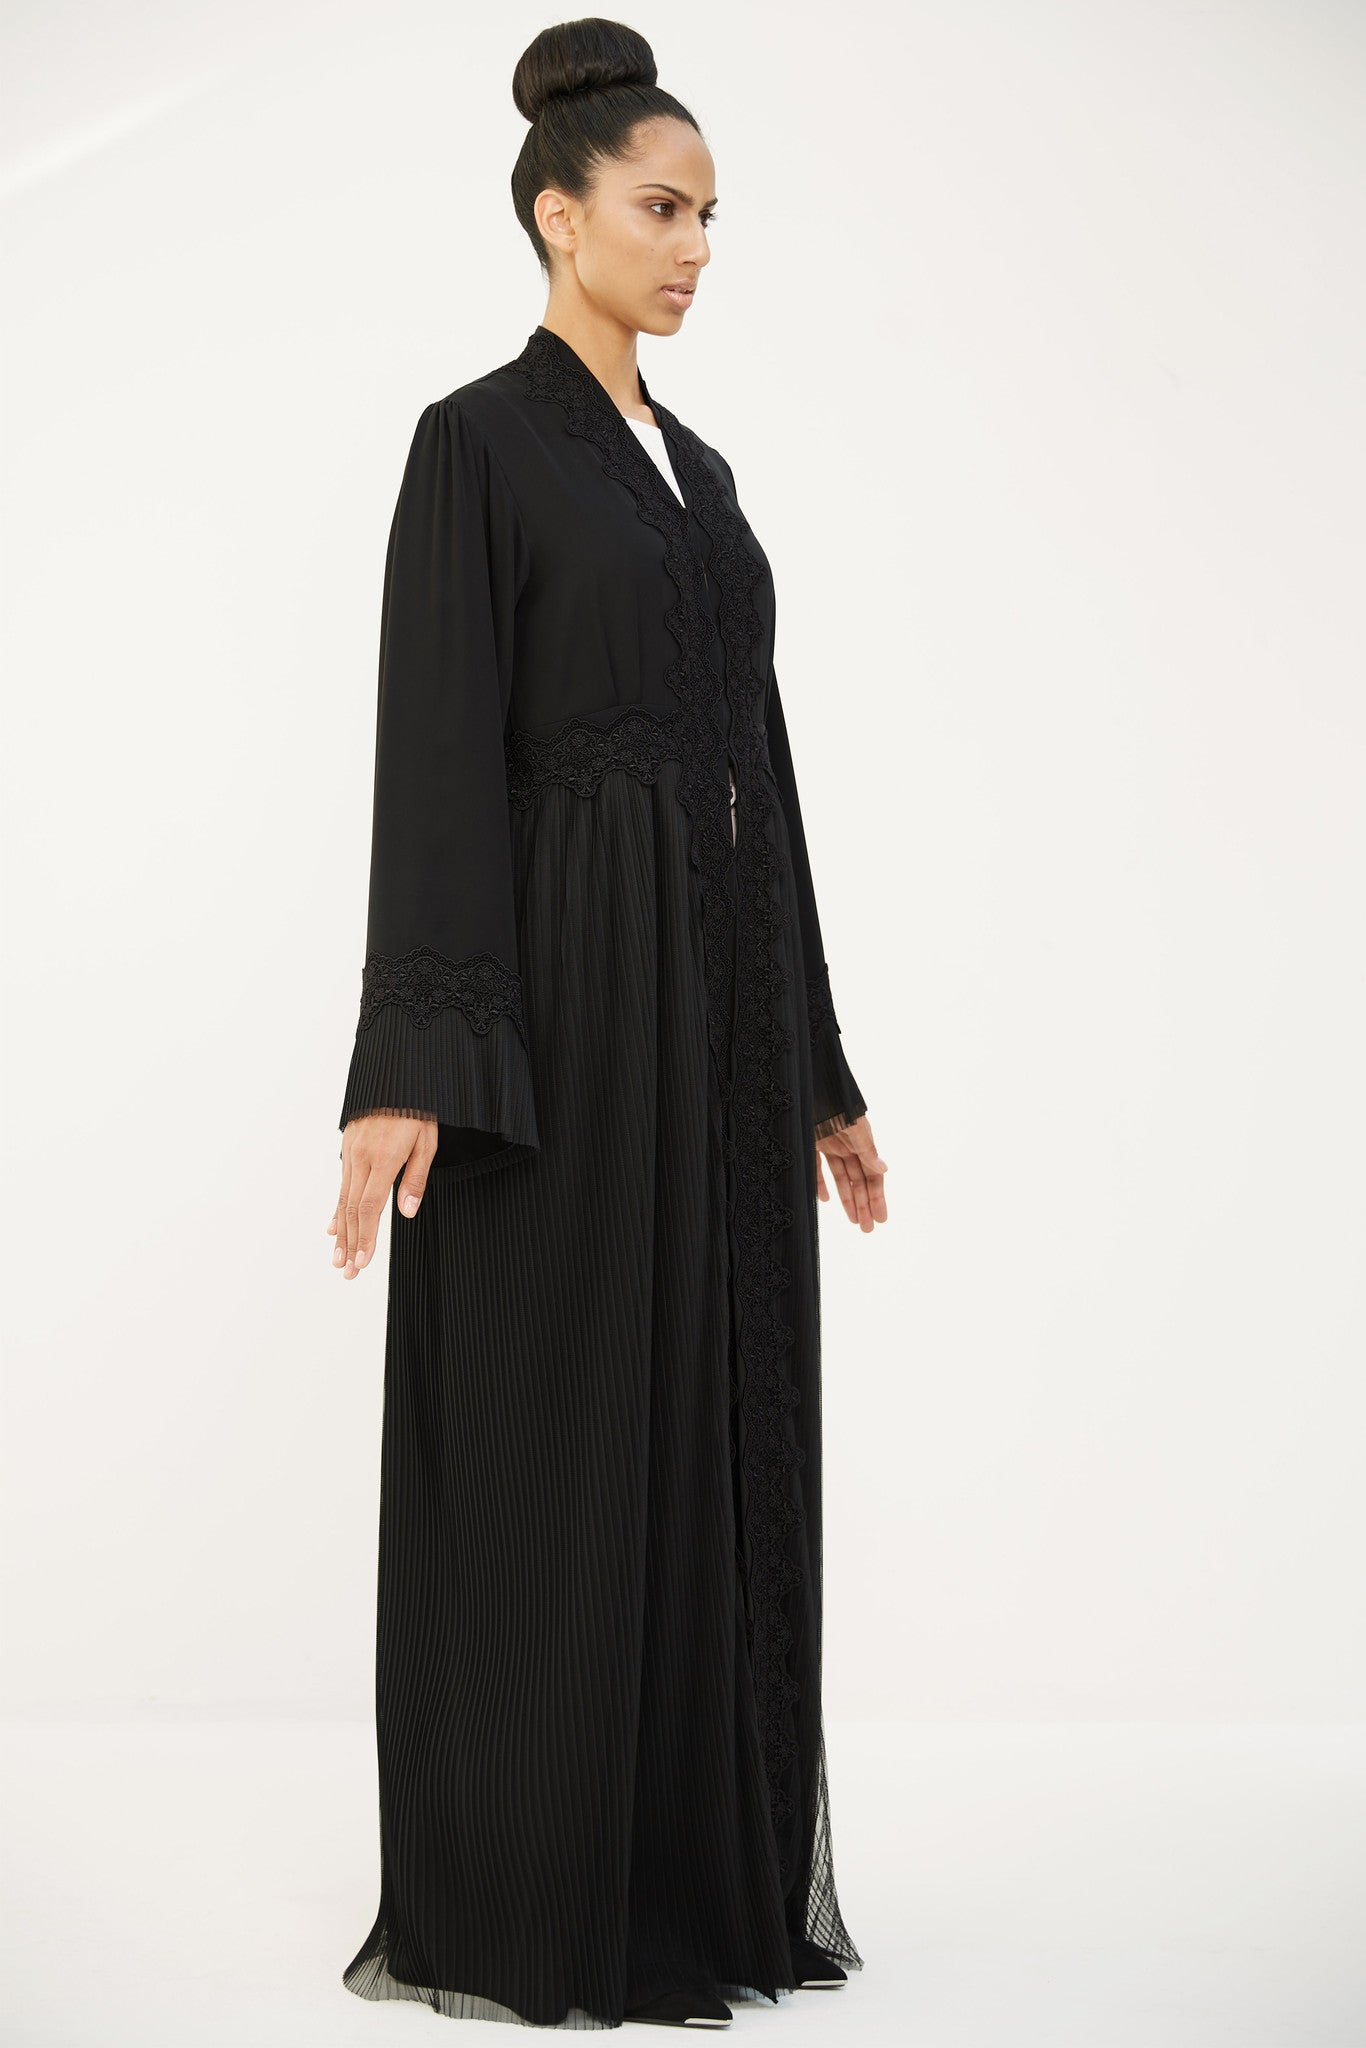 CLARISSE - ACR1907B - Arabesque dress style abaya with pleated tulle skirt. In combination with French guipure on front, belt and sleeves.